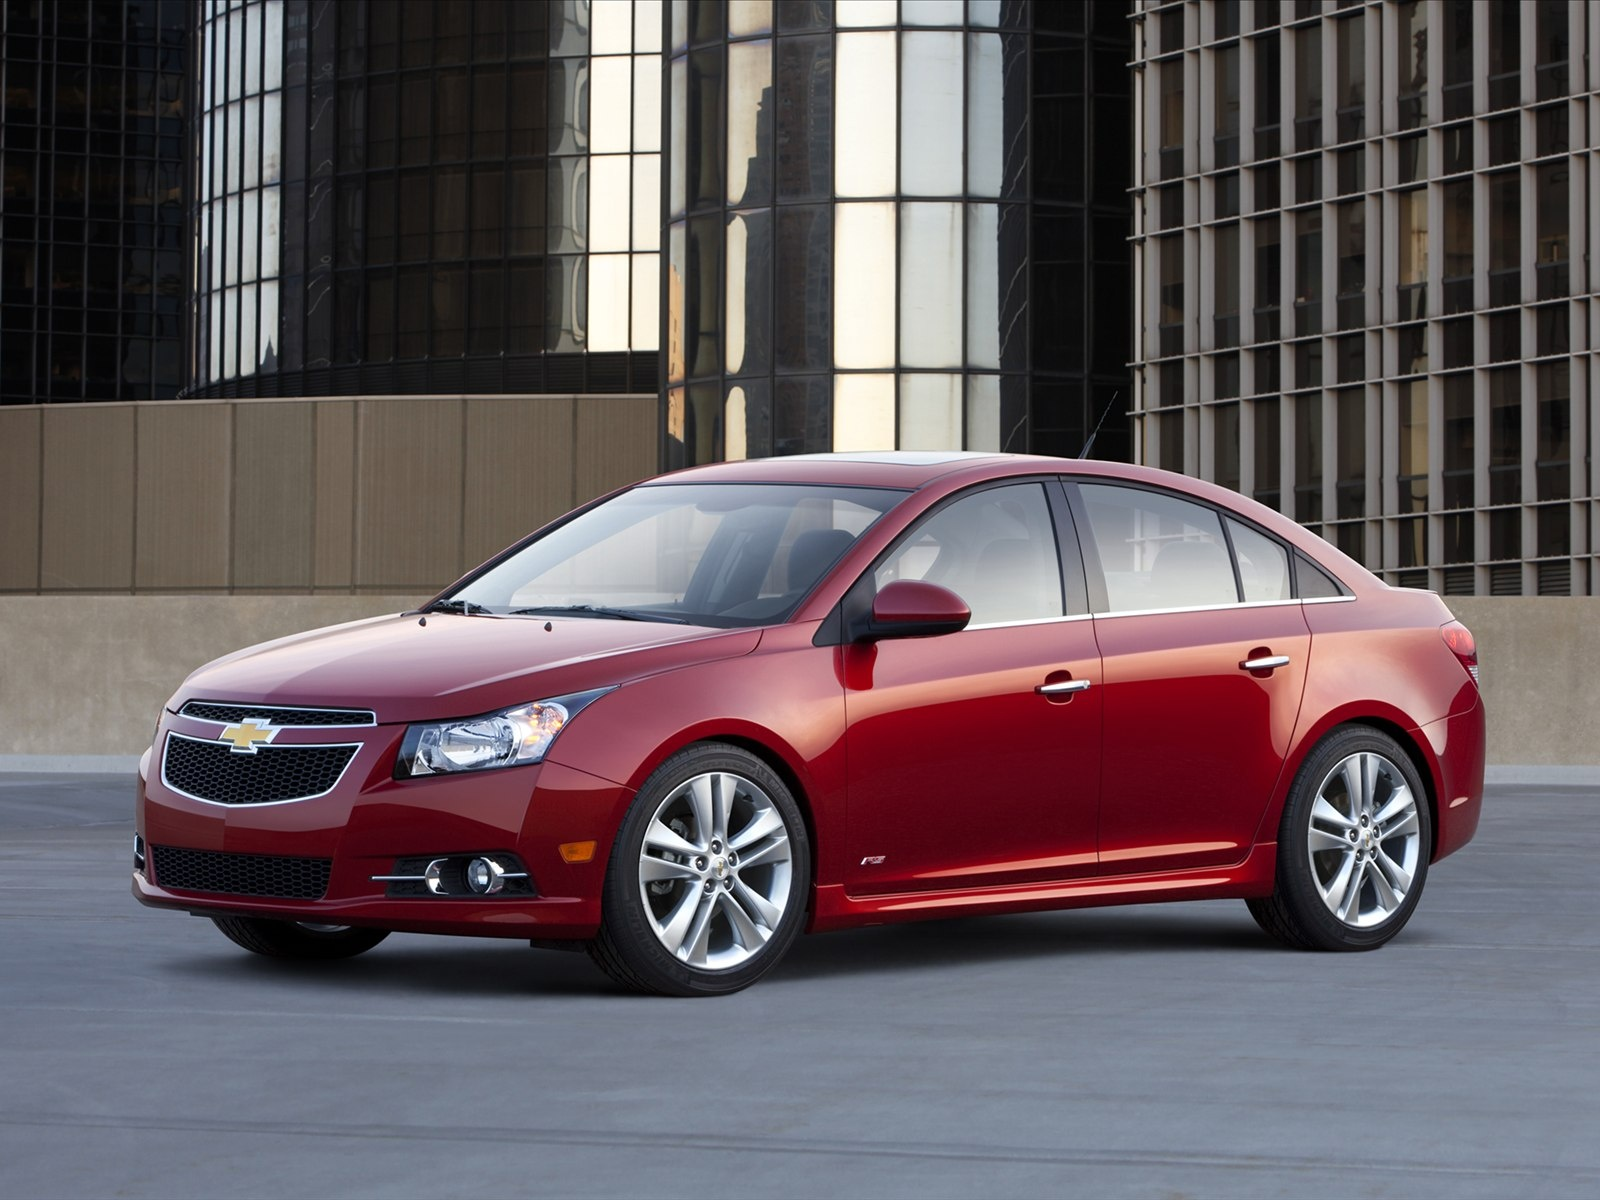 Chevrolet Cruze Questions - How do I manually start my car